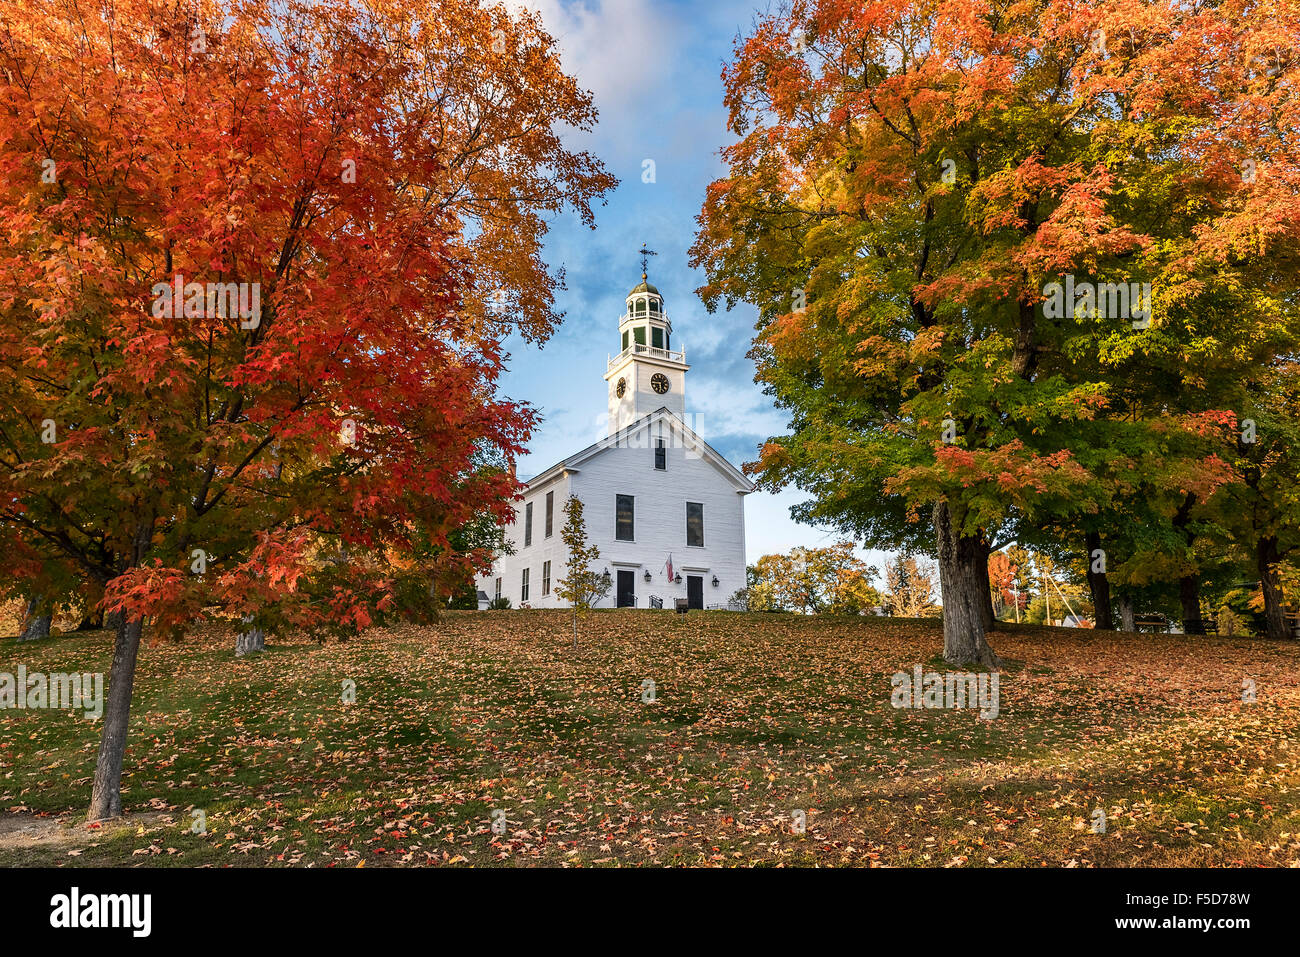 Village green and community church, Greenfield, New Hampshire, USA - Stock Image